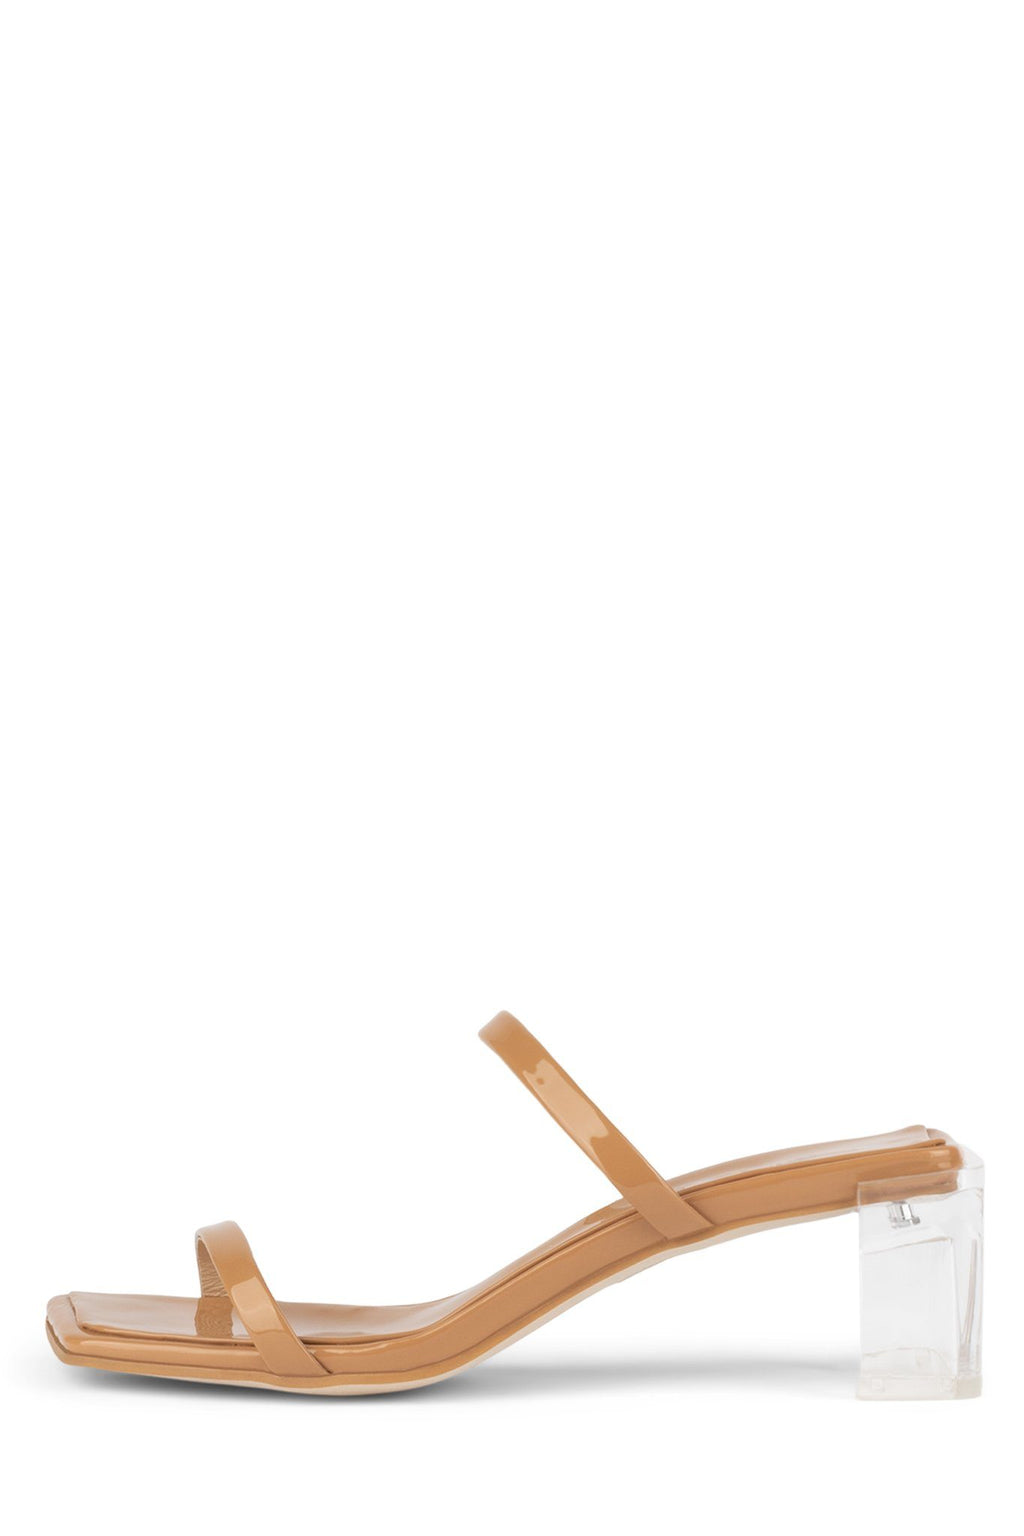 EPOXY Heeled Sandal YYH Nude Patent Clear 6